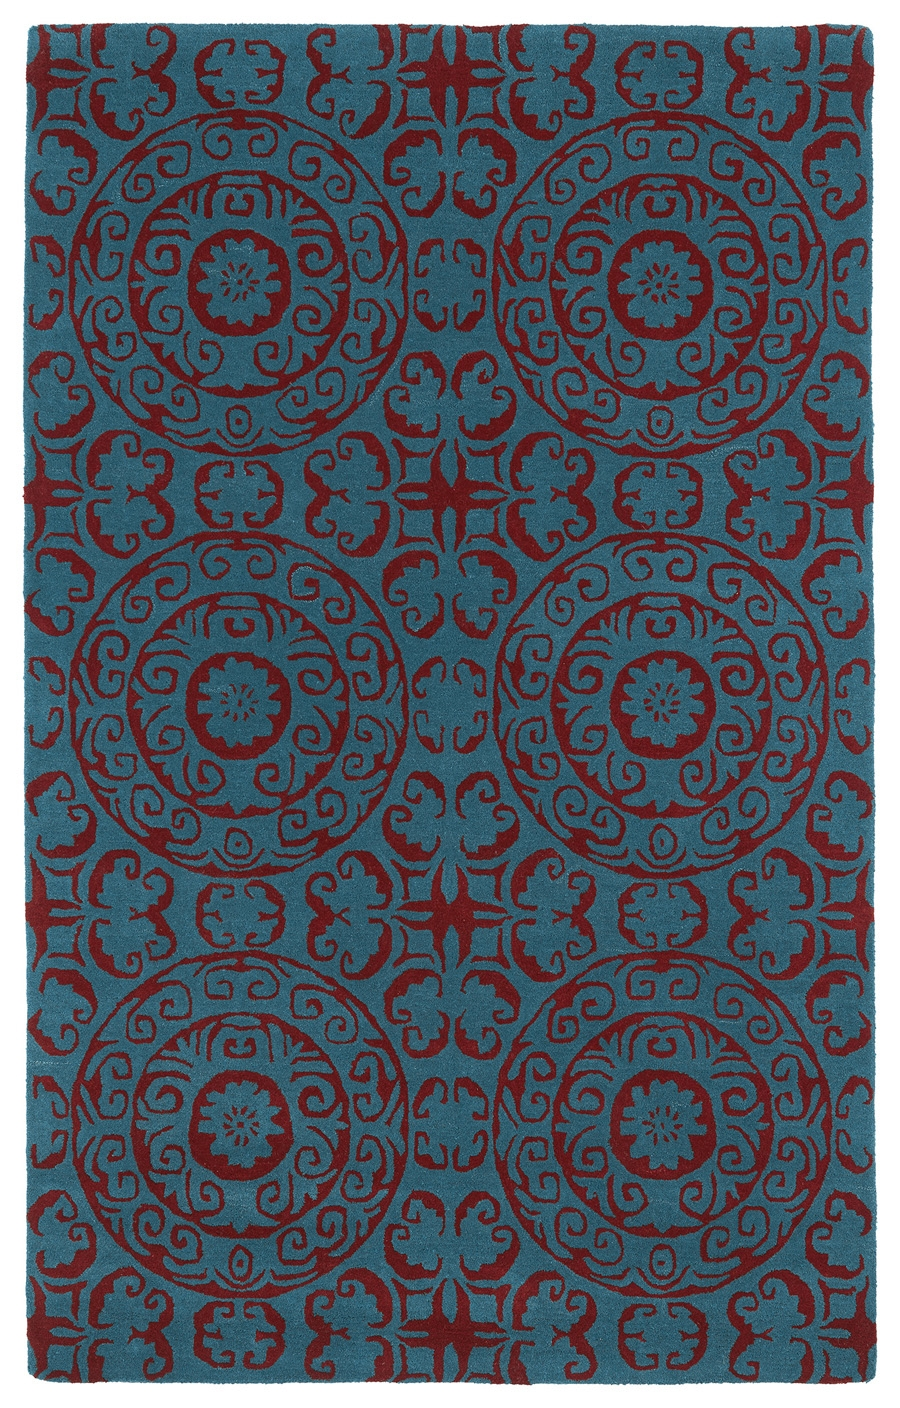 Kaleen Evolution EVL03 94 Peacock Rug